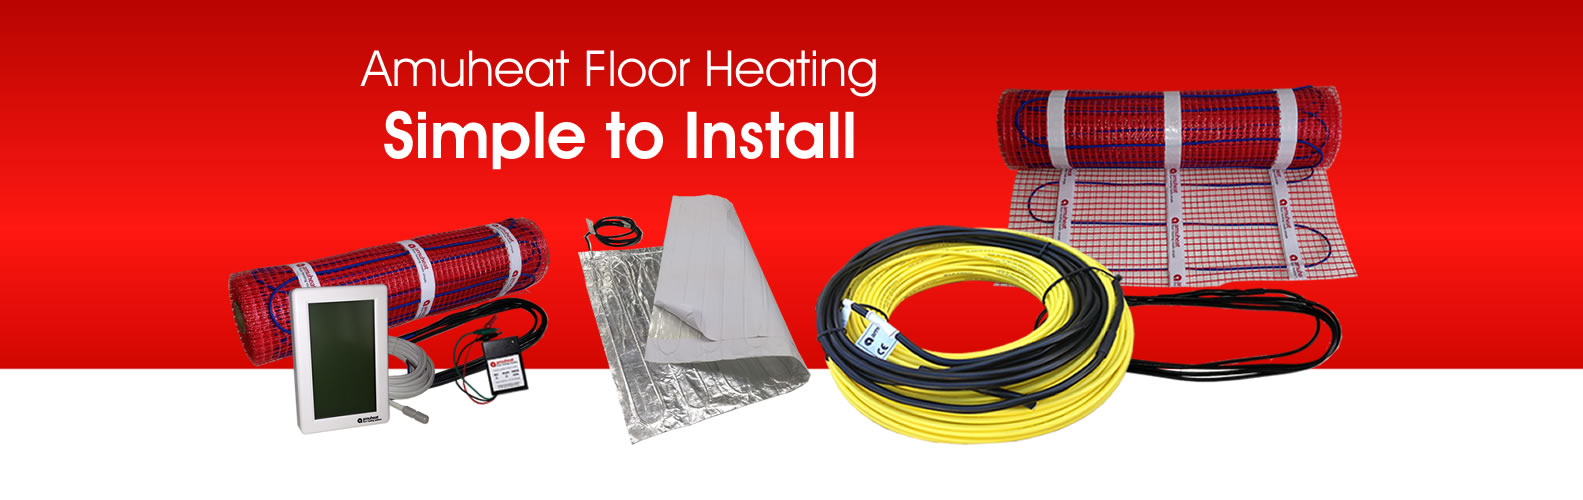 Floor heating shop australia buy electric hydronic underfloor floor heating shop australia buy electric hydronic underfloor heating kits dailygadgetfo Image collections